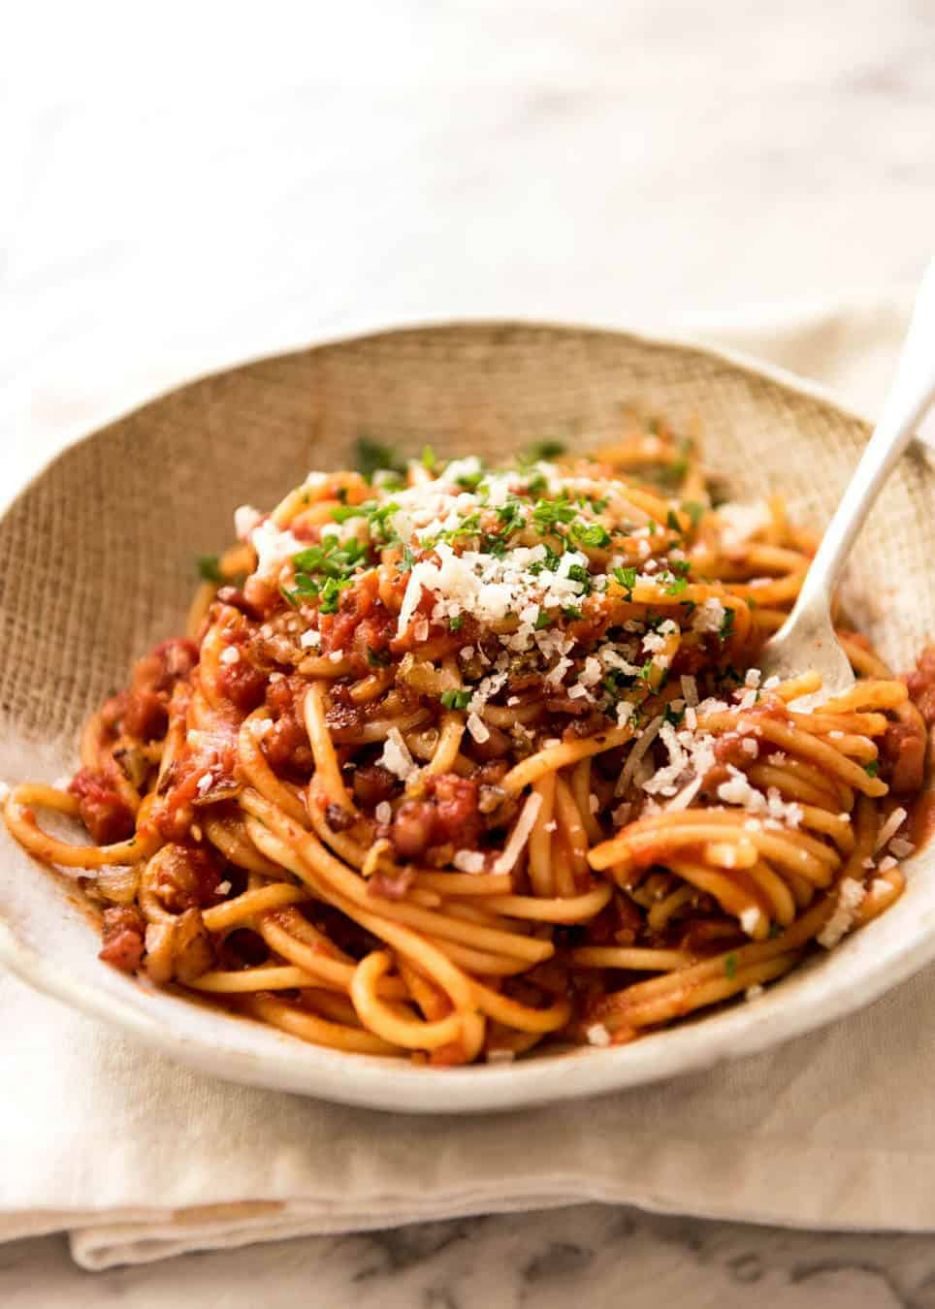 Bacon Pasta with tomato pasta sauce